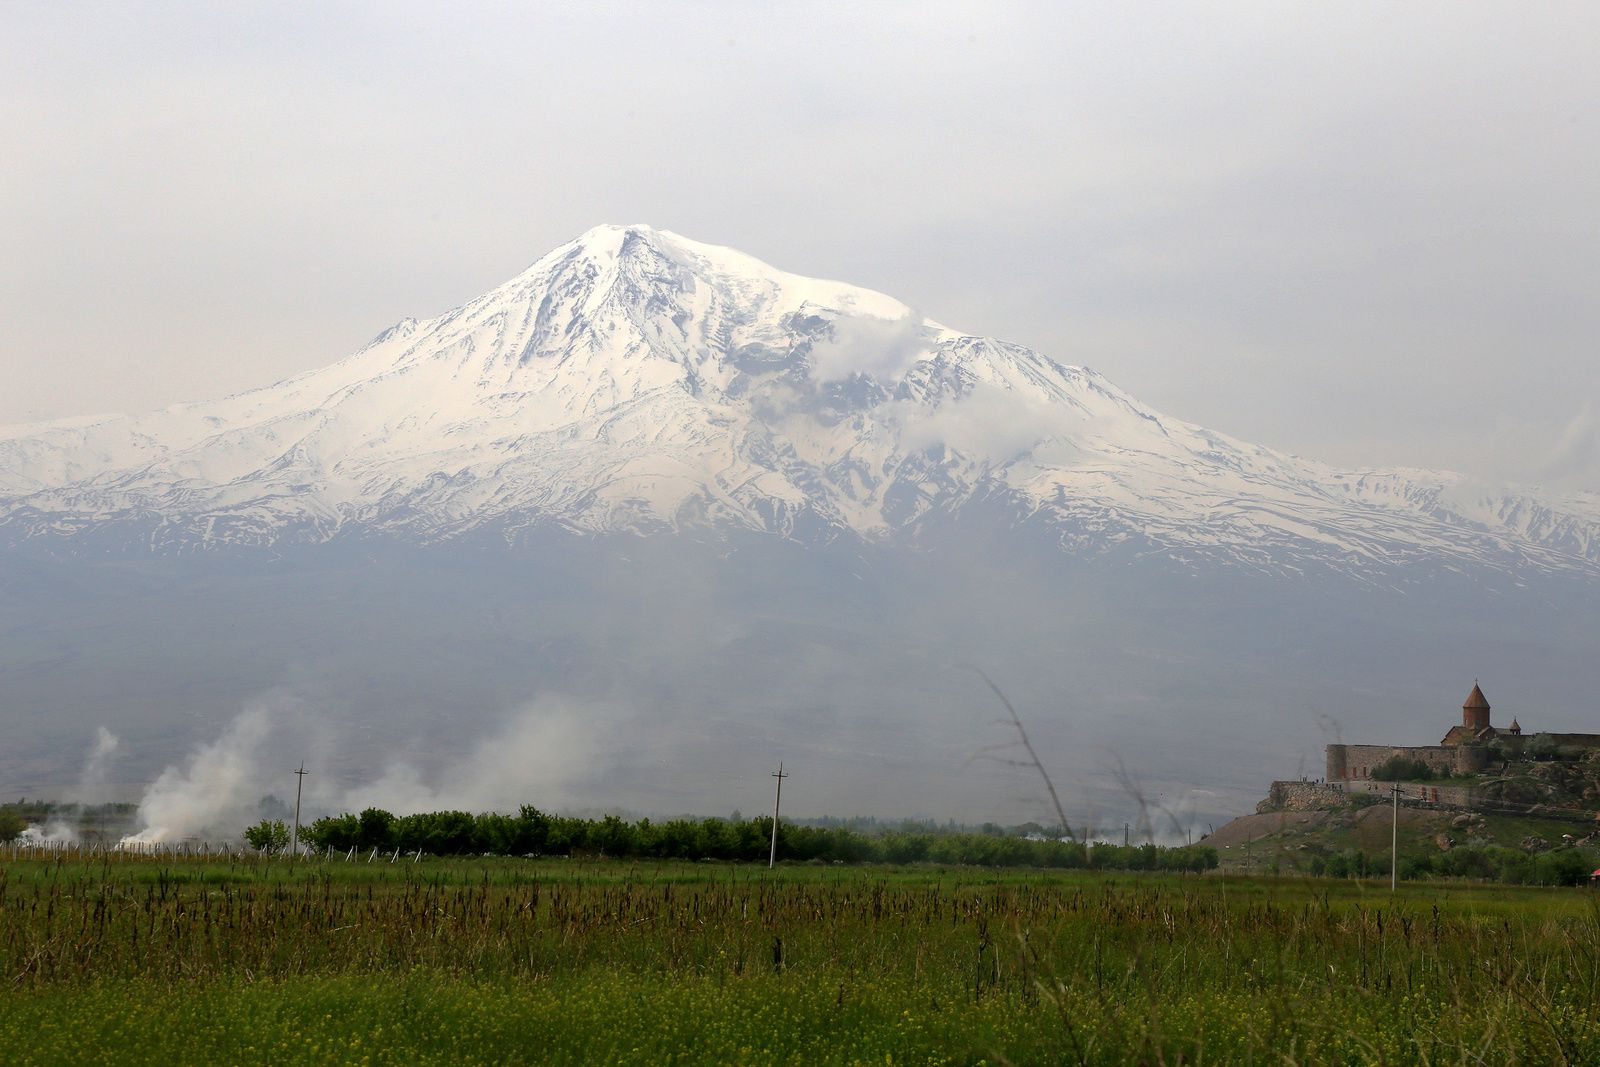 The monastery of Khor Virap and Grand Ararat - photo © Bernard Duyck 2019